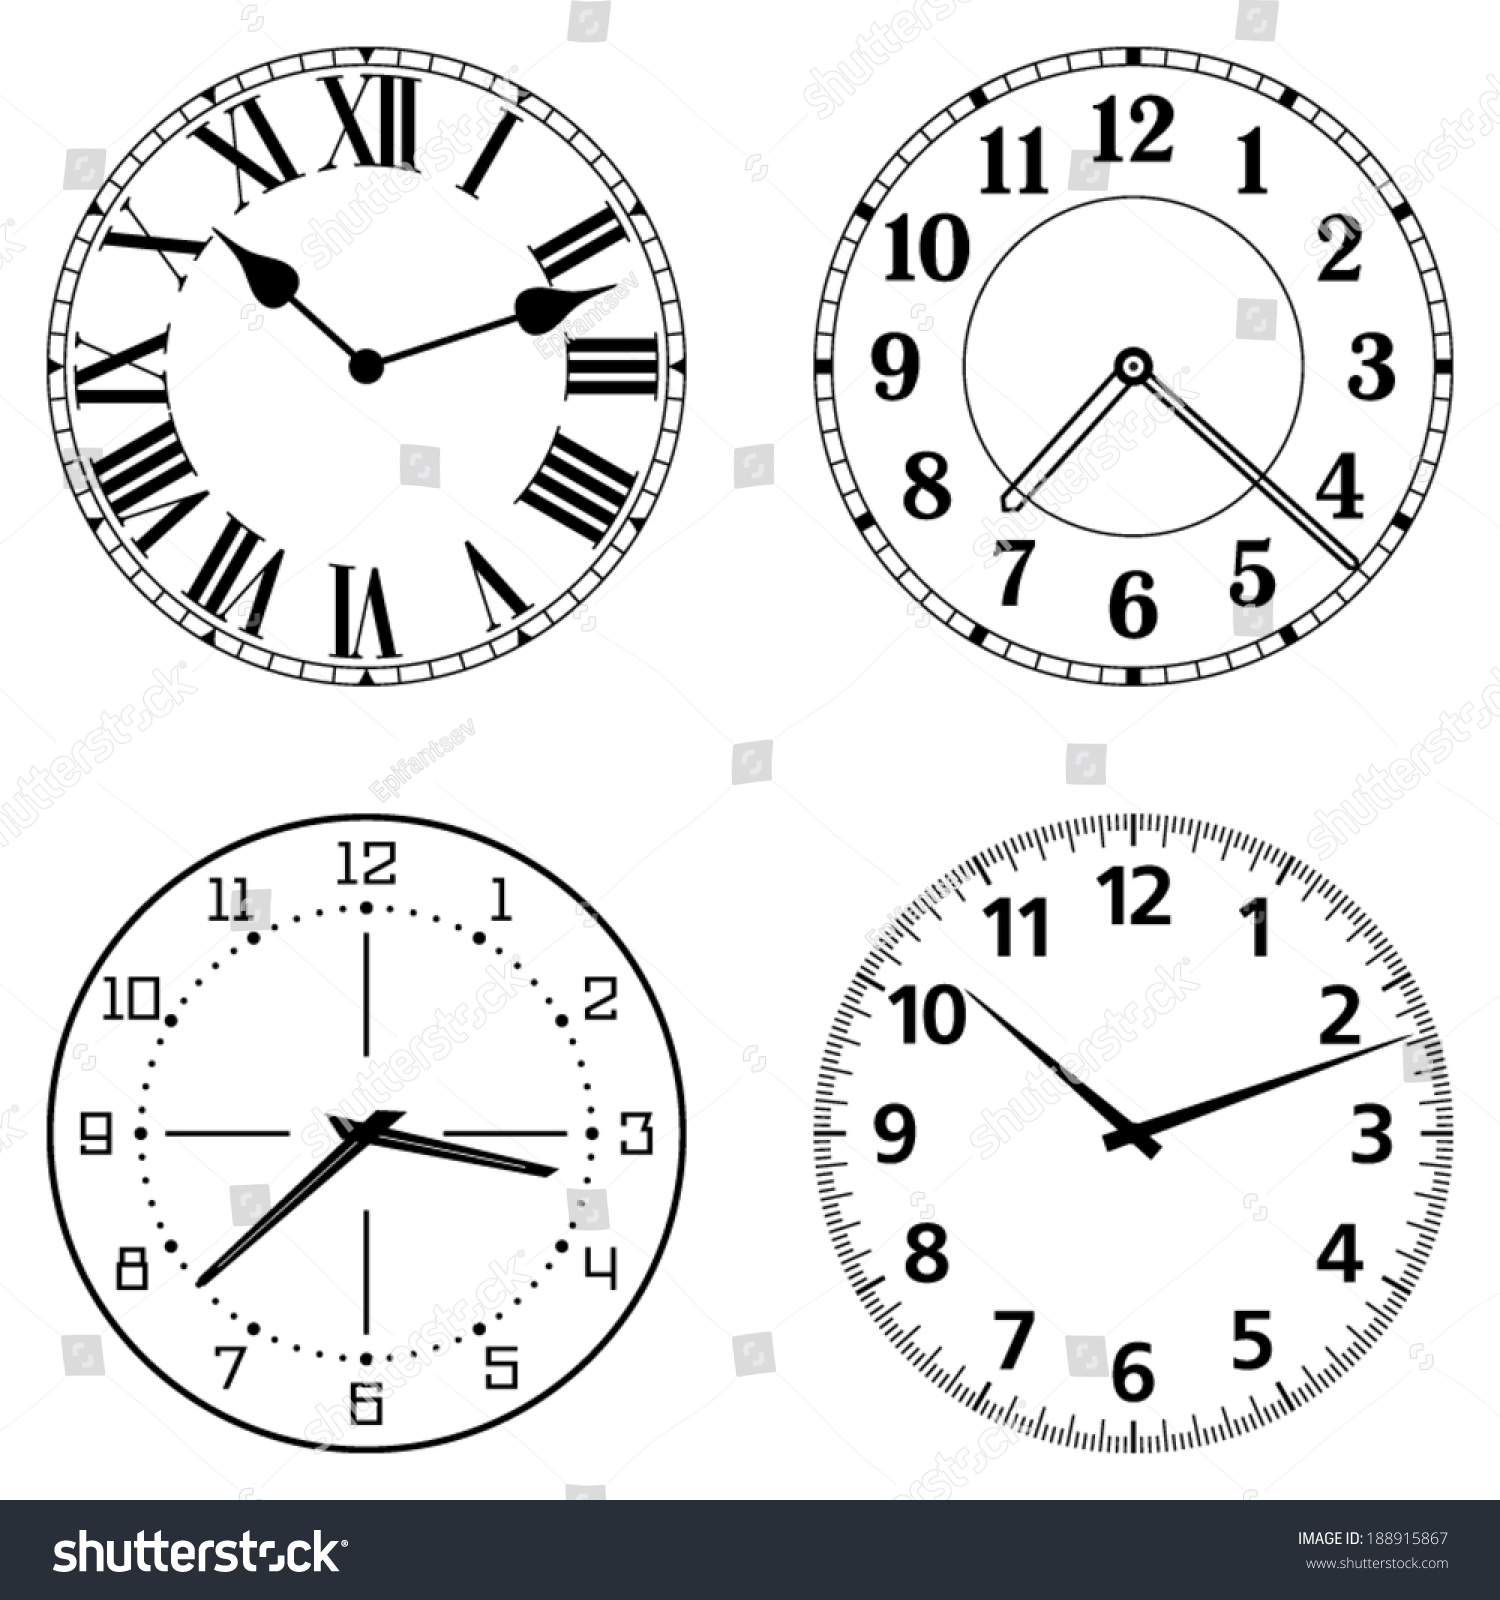 Set Of Different Clock Faces Editable Clock Easily Remove And Replace Hands And Design Stock